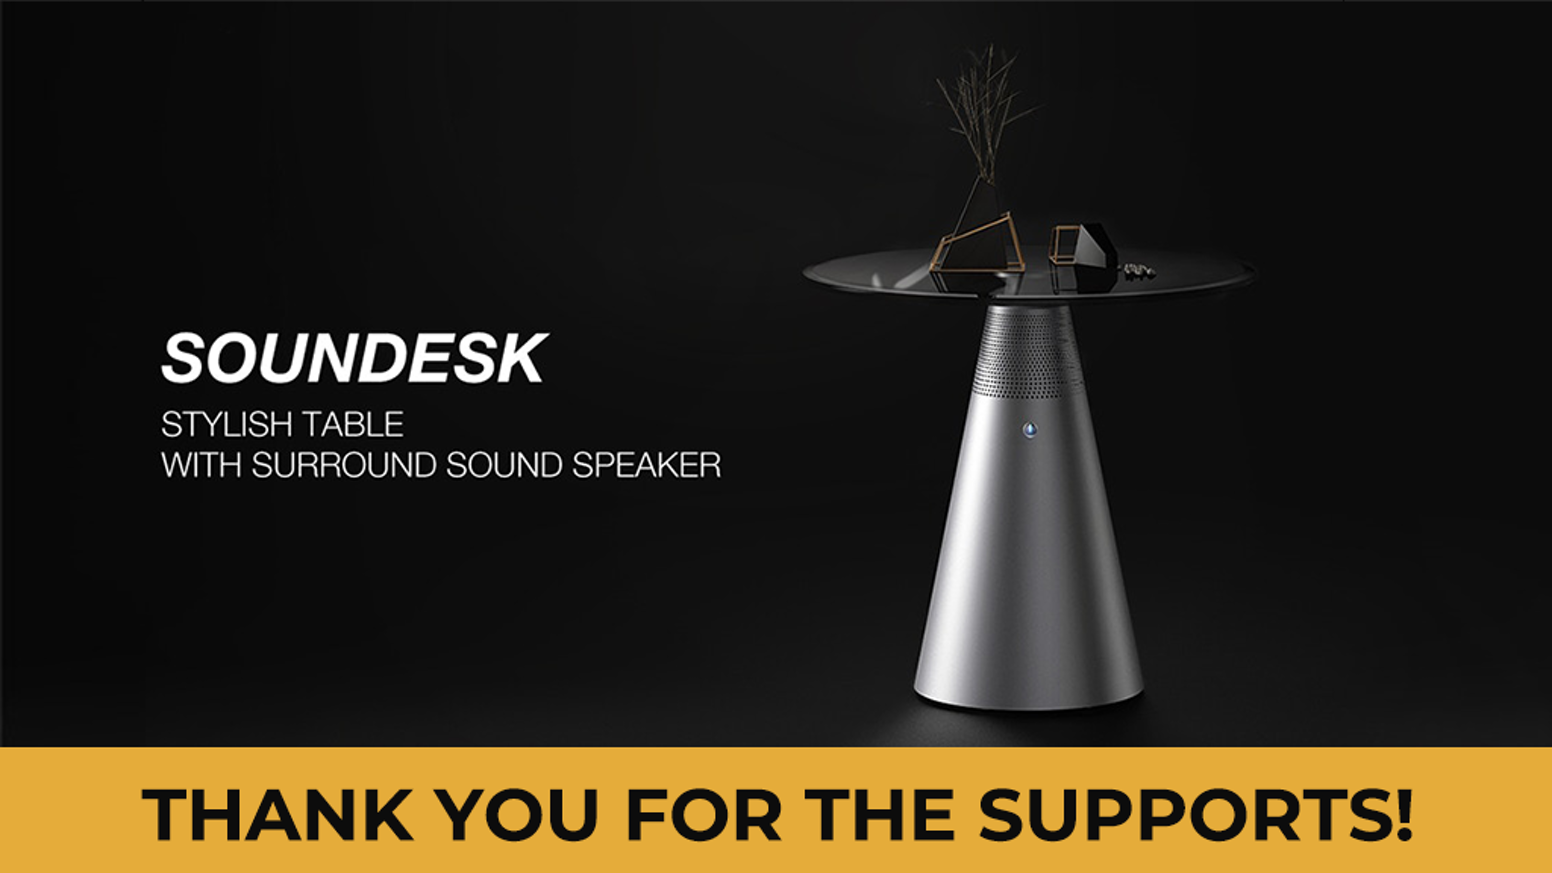 Sleek and Stylish, Soundesk is the perfect combination of modern furniture and technology. Music, wine & tech-savvy lifestyle.